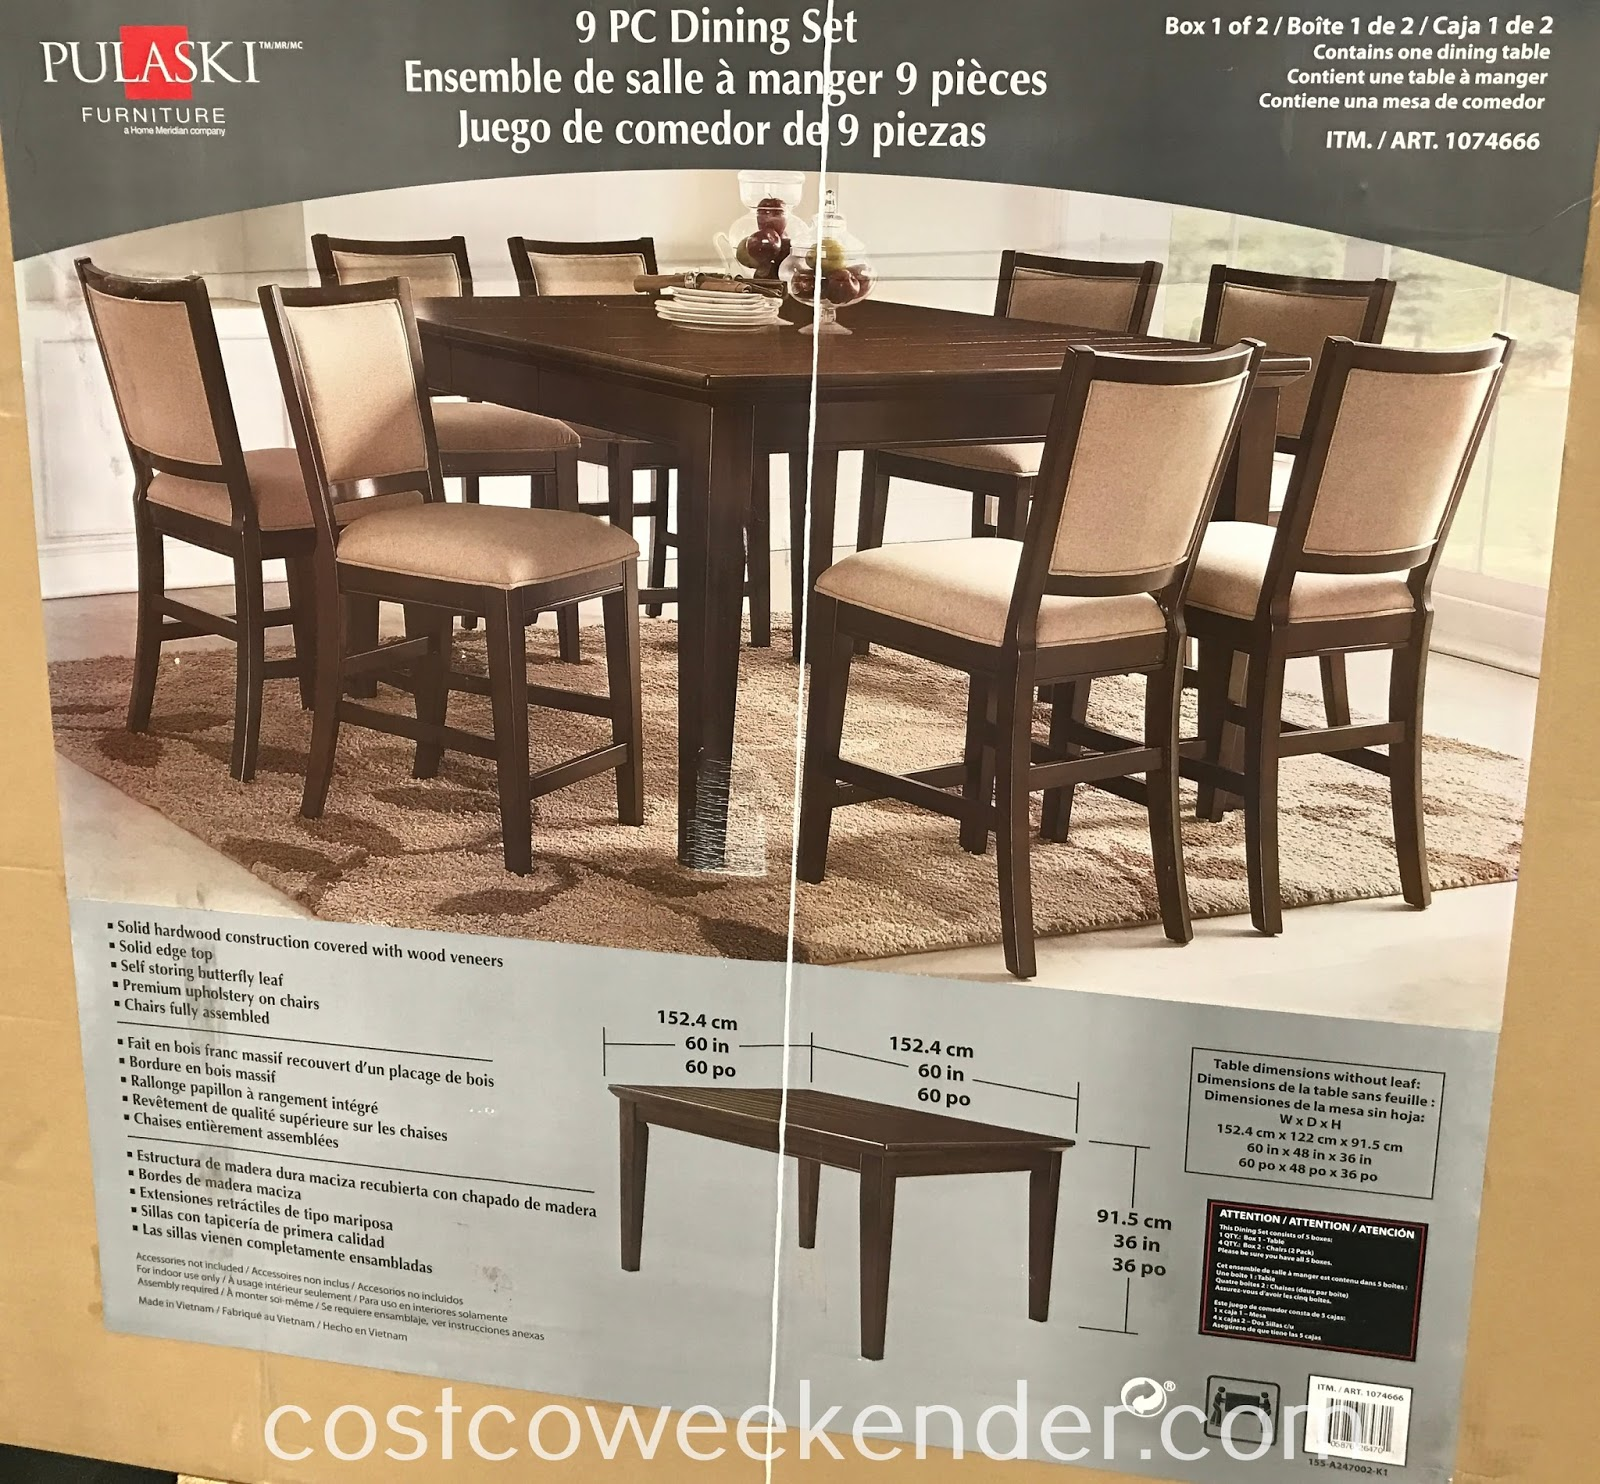 Costco 1074666 - Pulaski Furniture 9pc Dining Set: great for any home's dining room